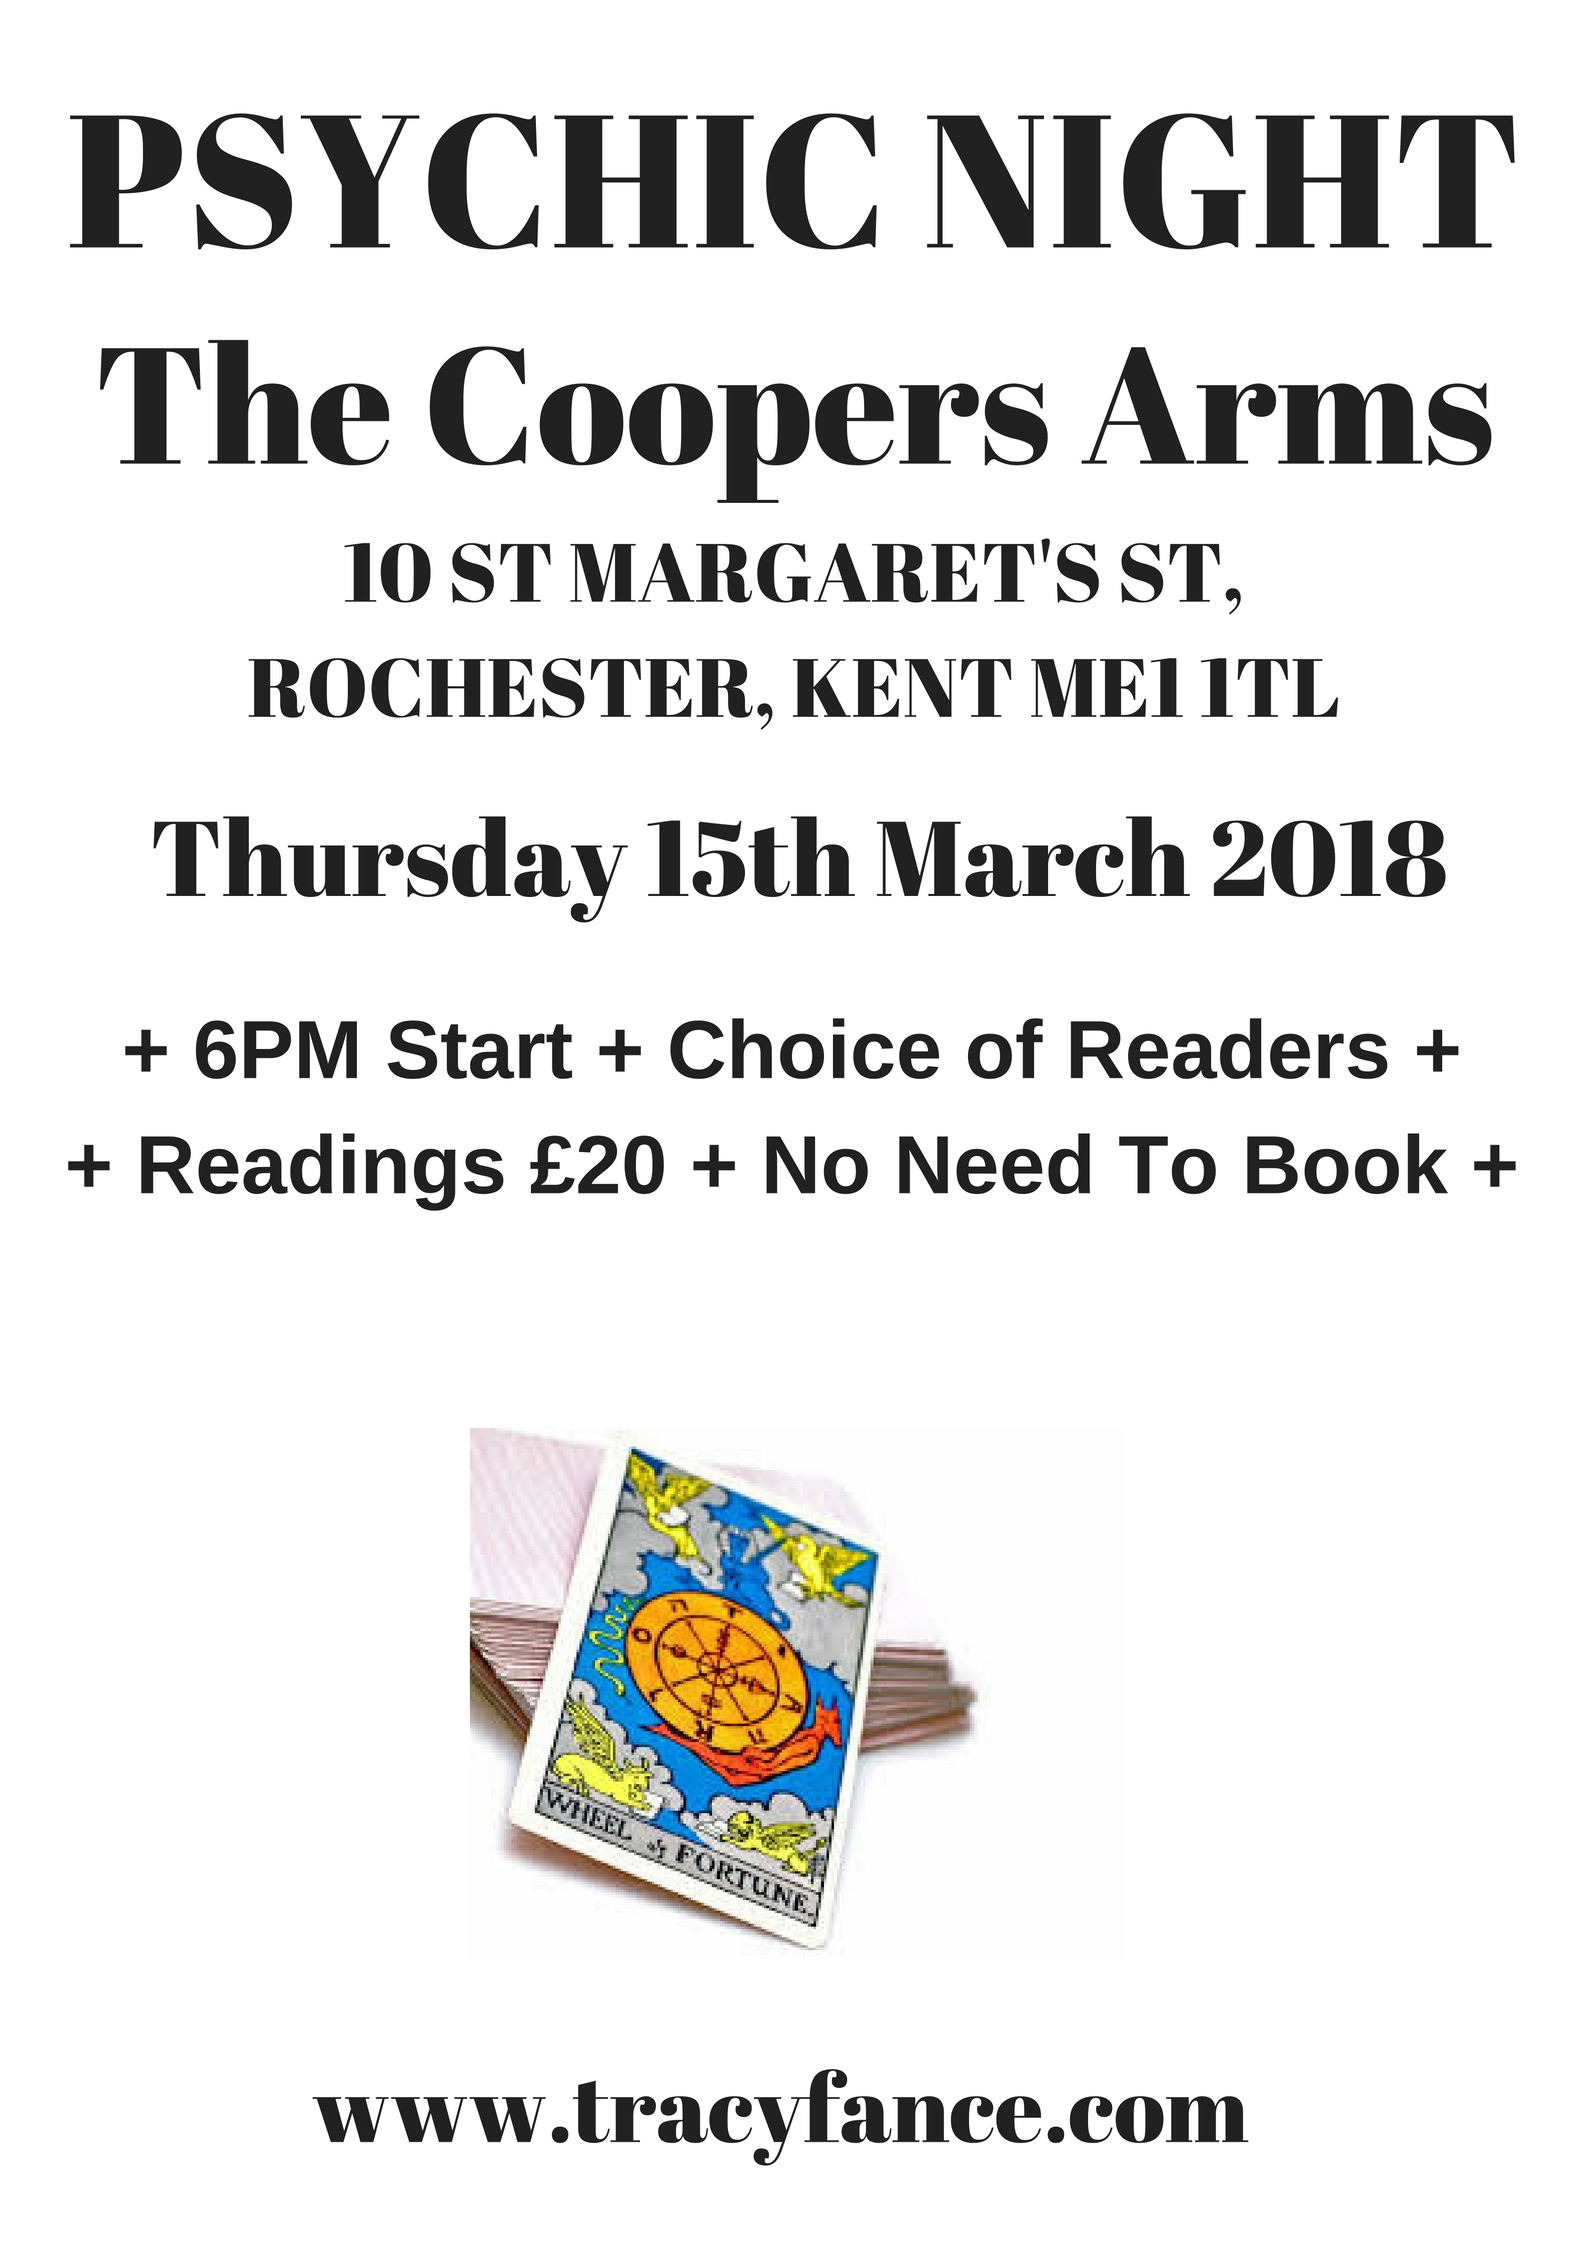 Coopers Arms Posters